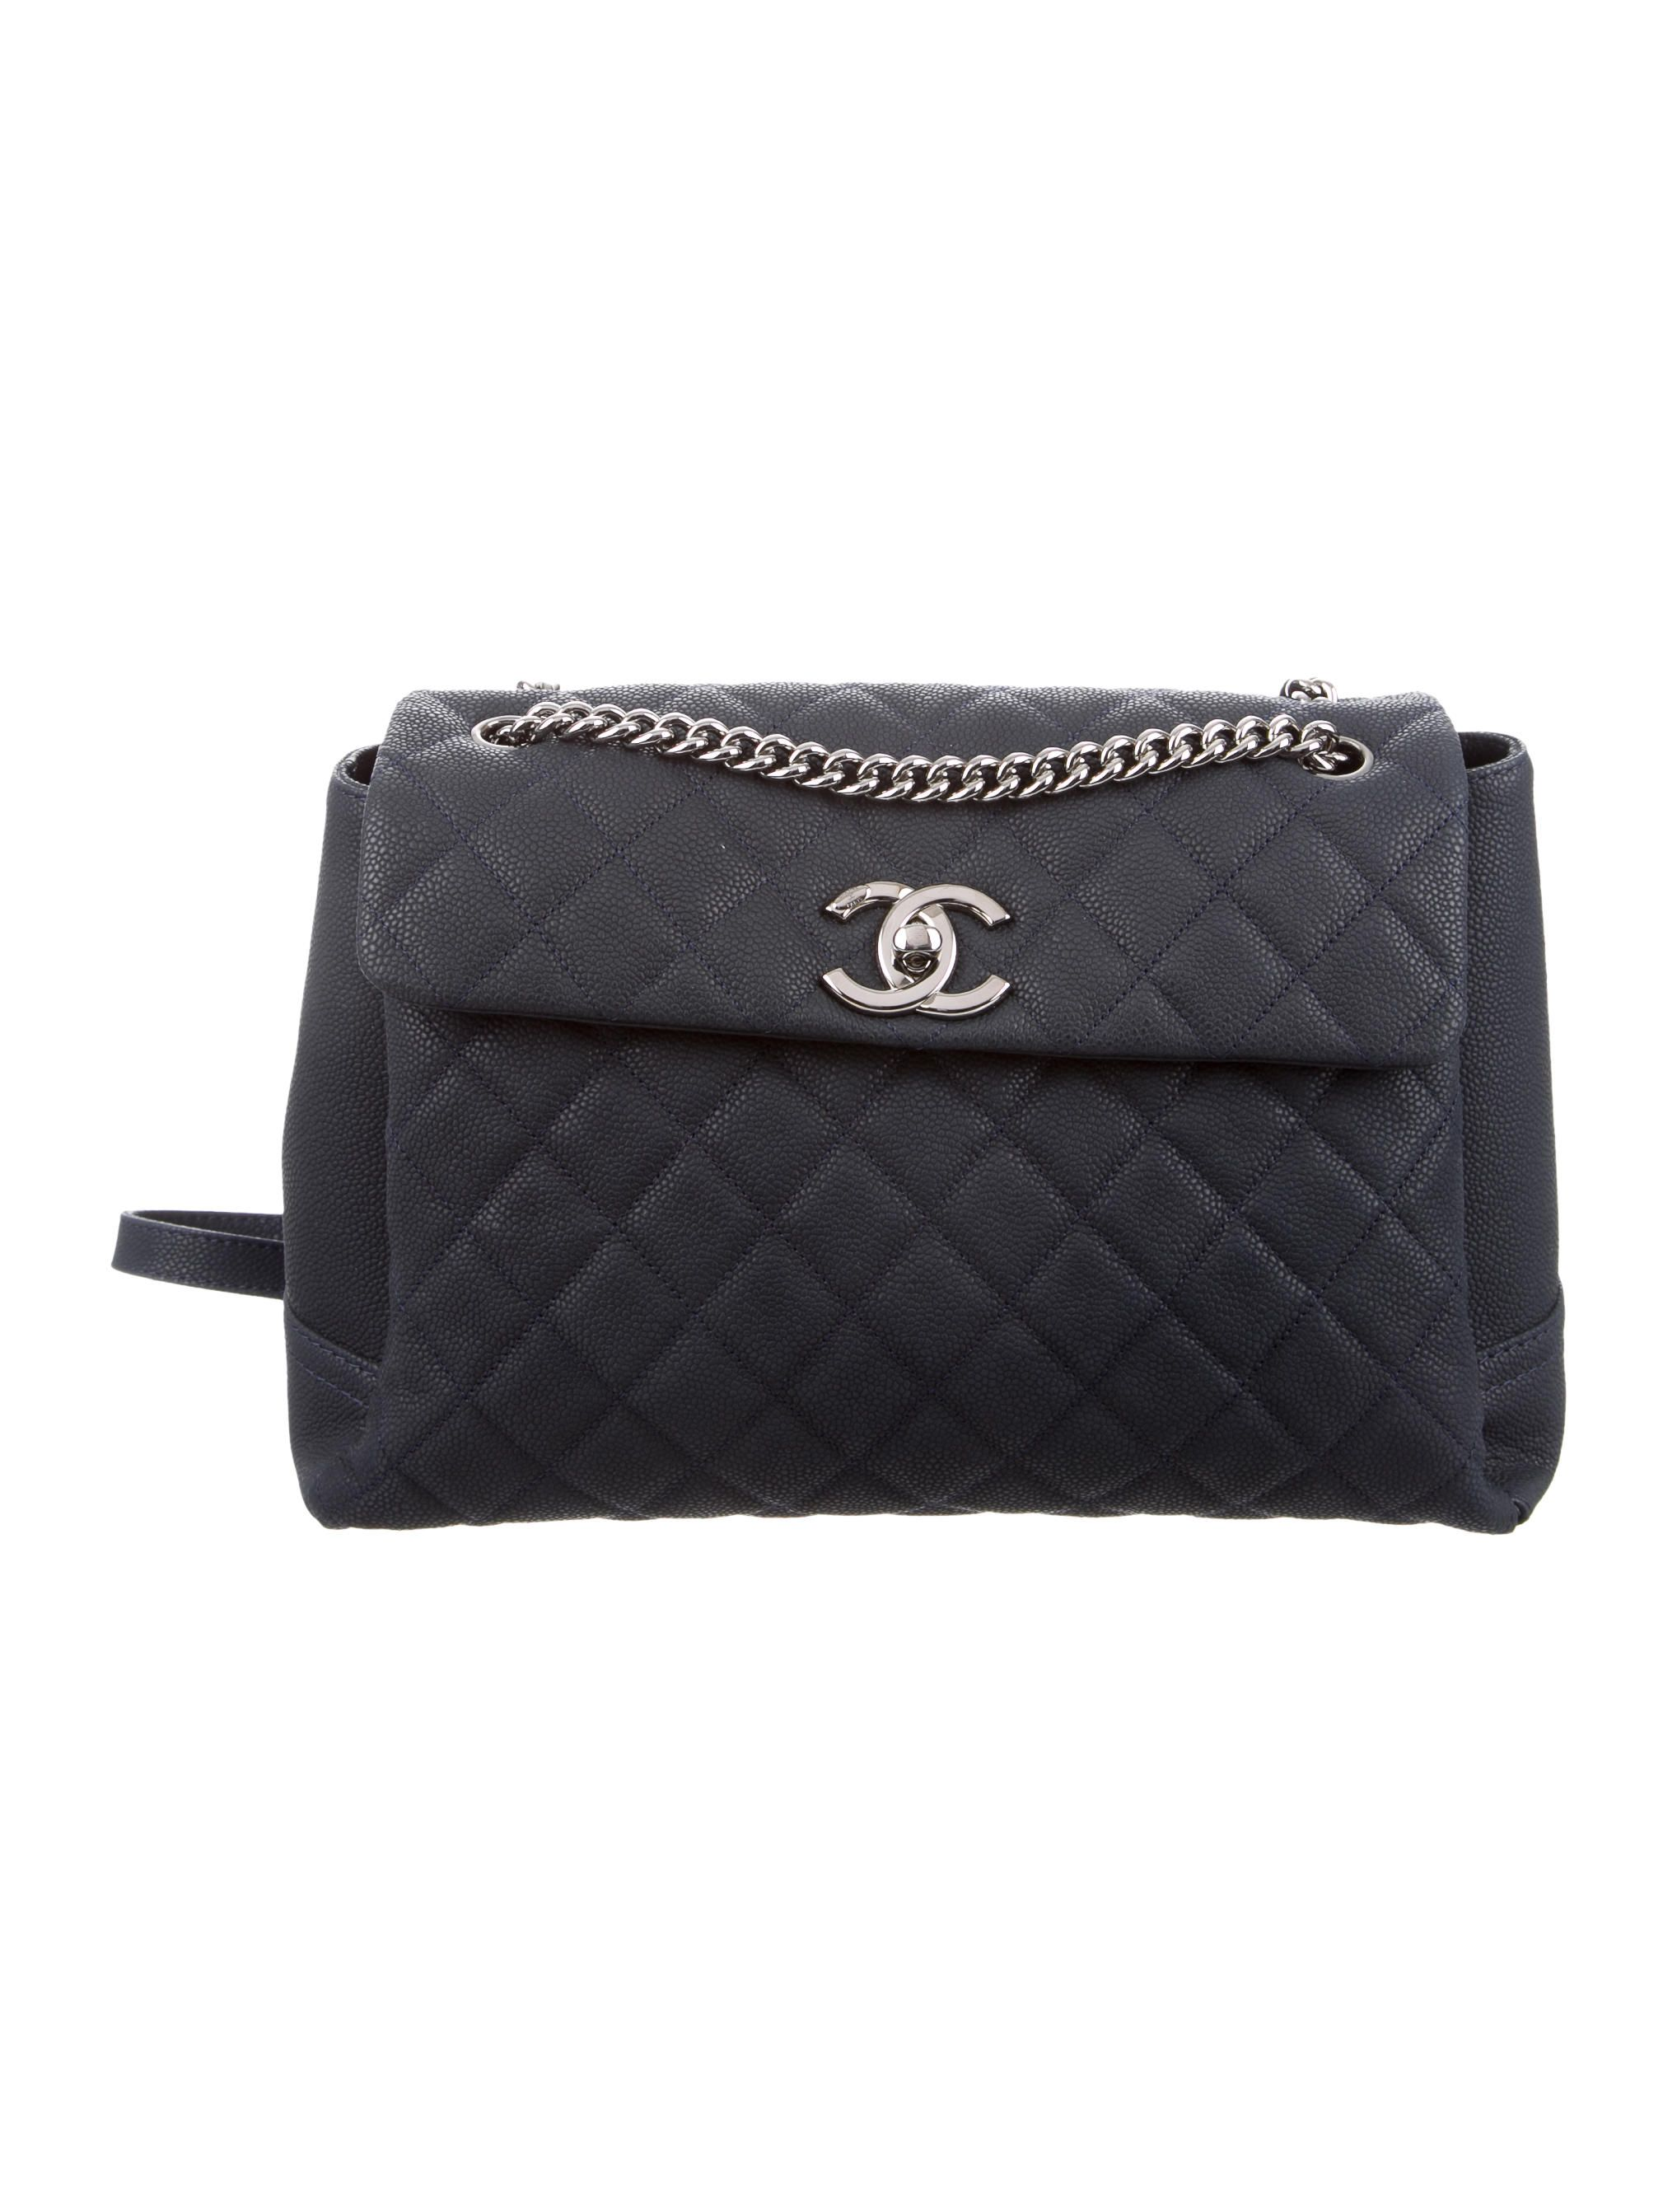 7bf85fd1dd75 Navy blue quilted caviar leather Chanel Lady Pearly Flap Bag with  silver-tone hardware,